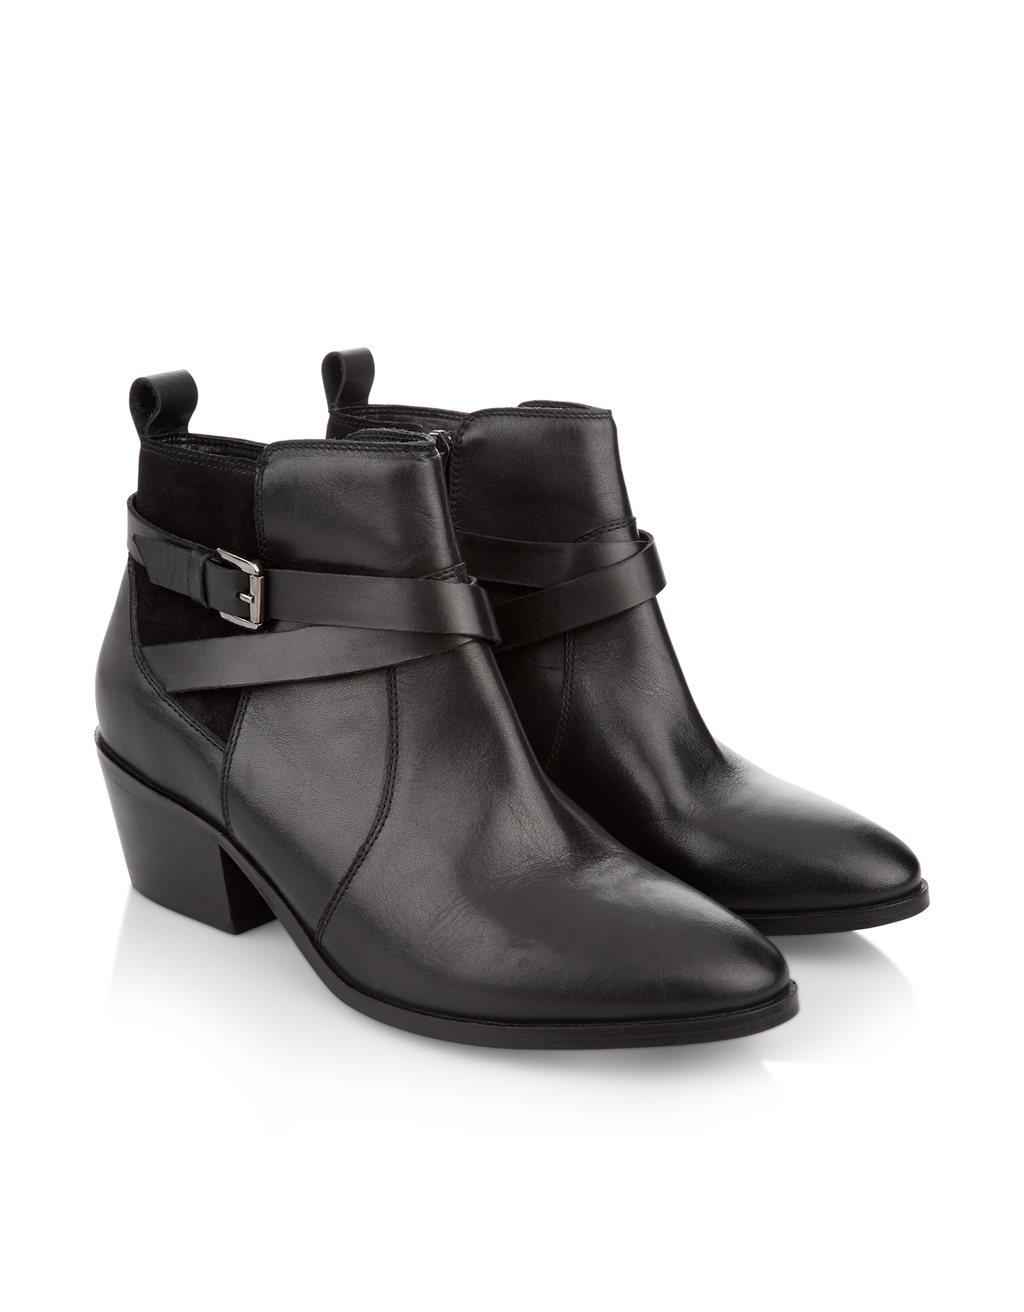 Estrella Buckle Ankle Boot - predominant colour: black; occasions: casual; material: leather; heel height: mid; heel: cone; toe: pointed toe; boot length: ankle boot; style: cowboy; finish: plain; pattern: plain; season: s/s 2016; wardrobe: basic